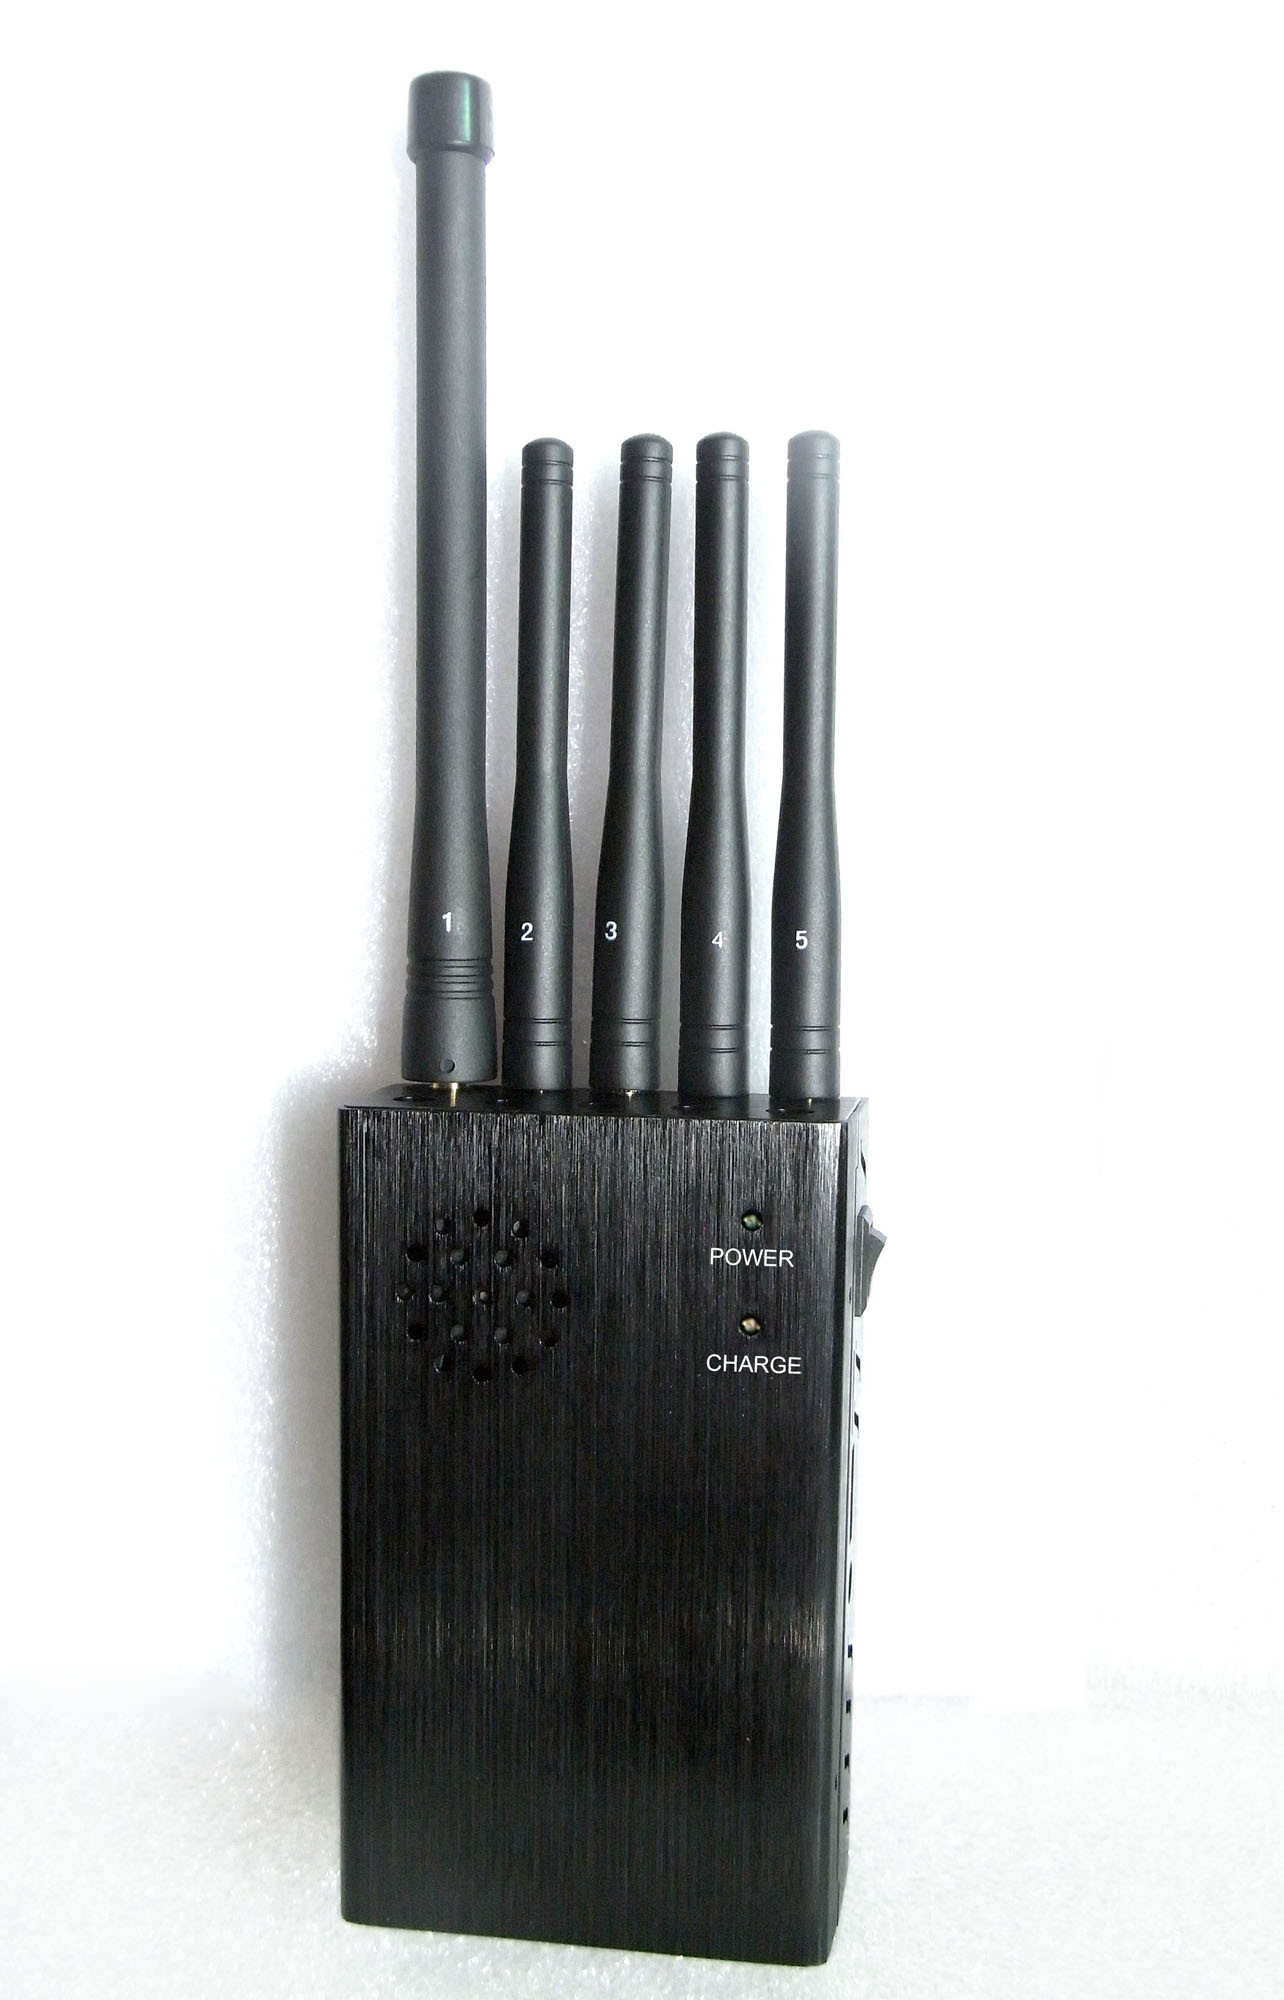 phone jammer florida water